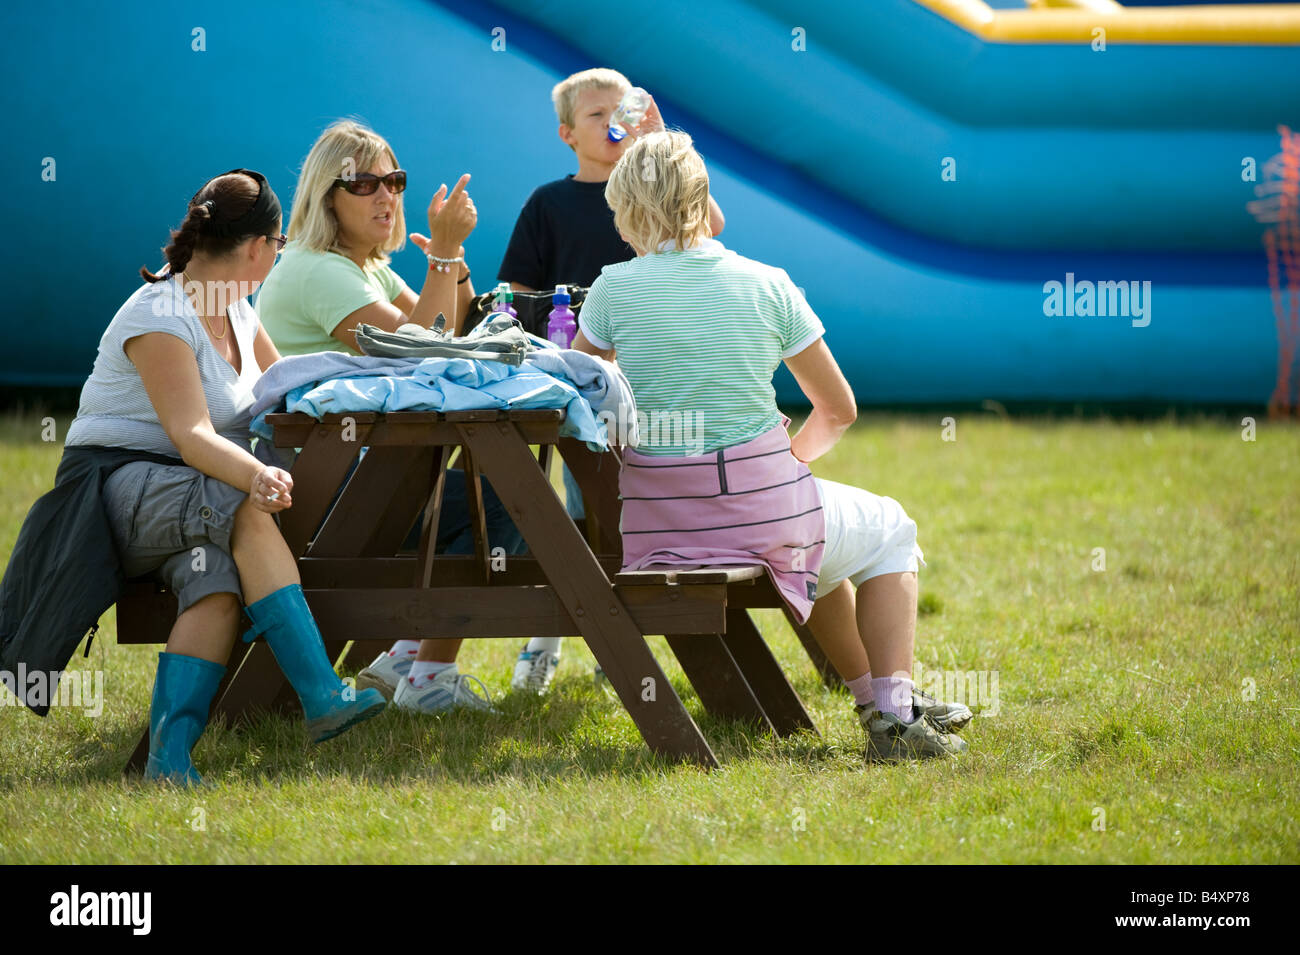 Family pass time stock photos family pass time stock - Knaresborough swimming pool timetable ...